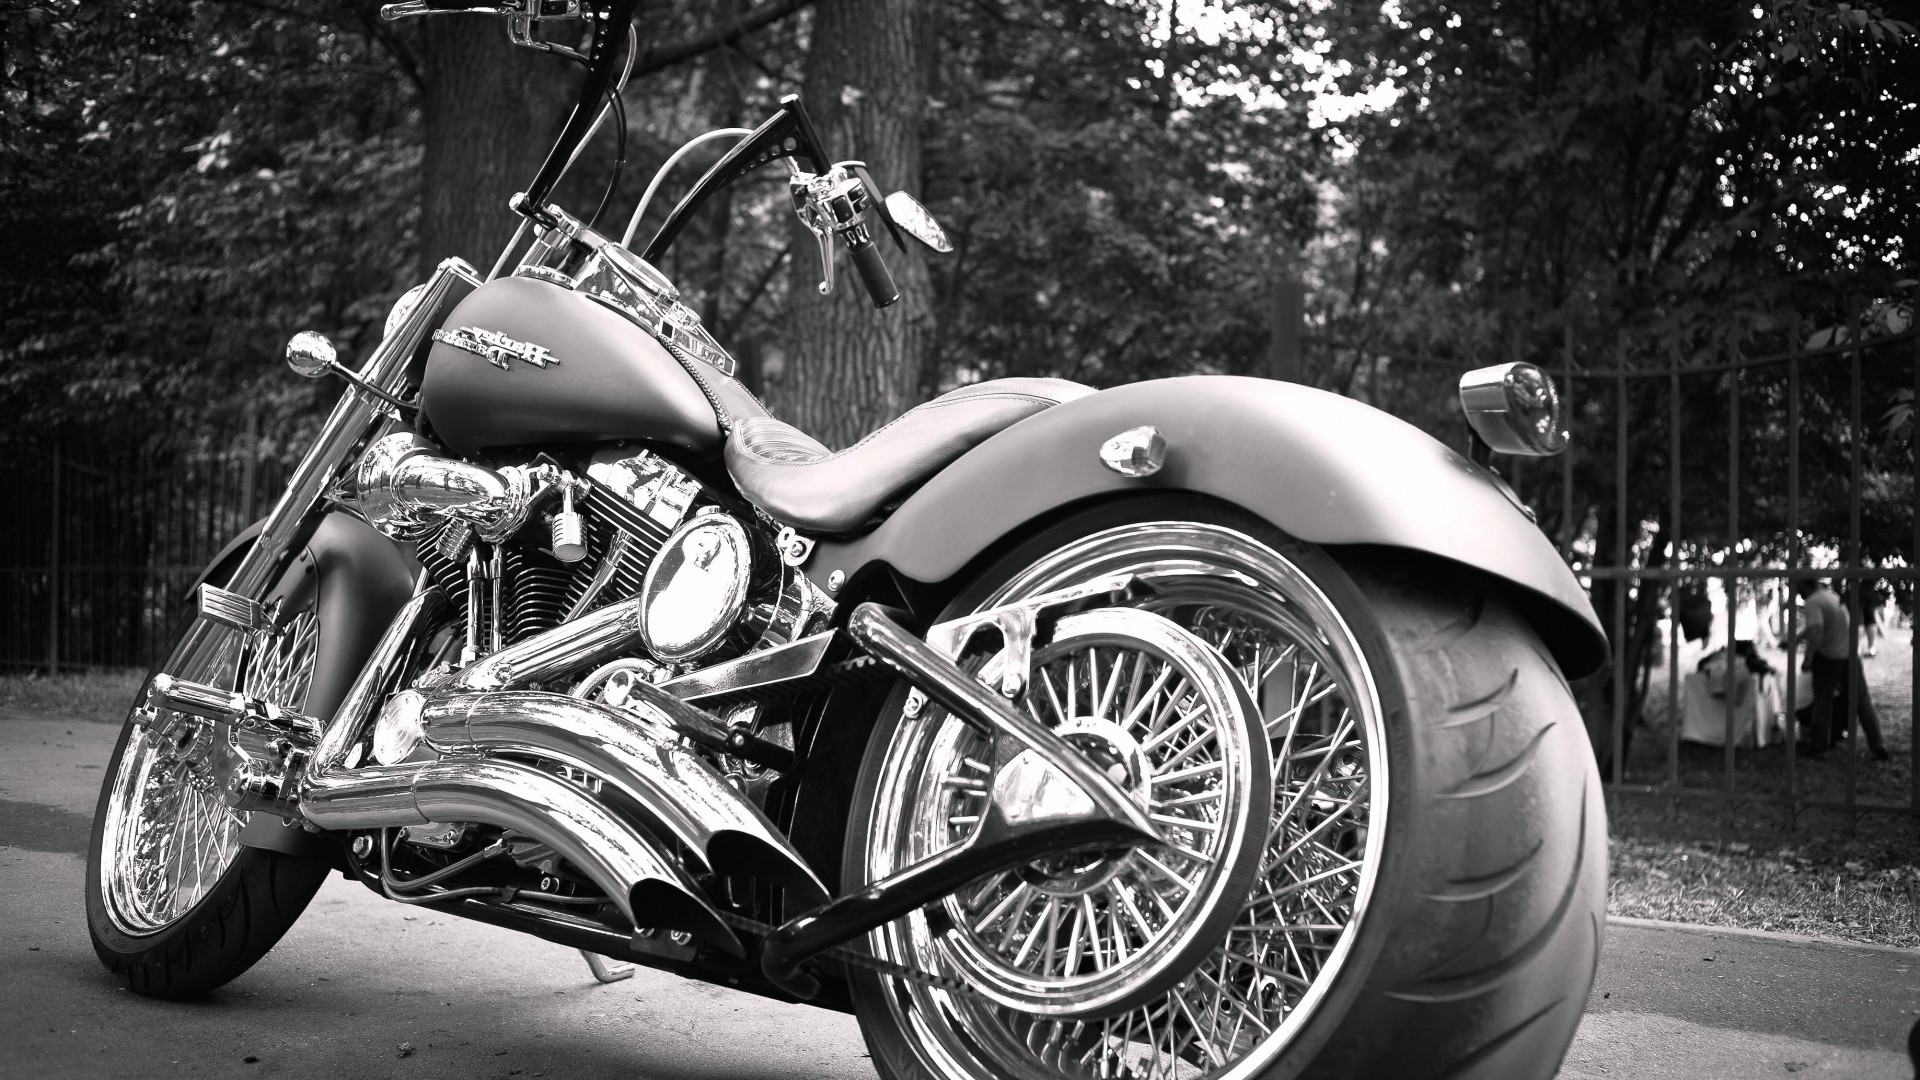 Cool Wallpaper High Resolution Harley Davidson - Harley-Davidson-Classic-HD-Wallpaper-download-high-definition-background-wallpapers-smart-phones-co-PIC-MCH071158  Image_59871.jpg